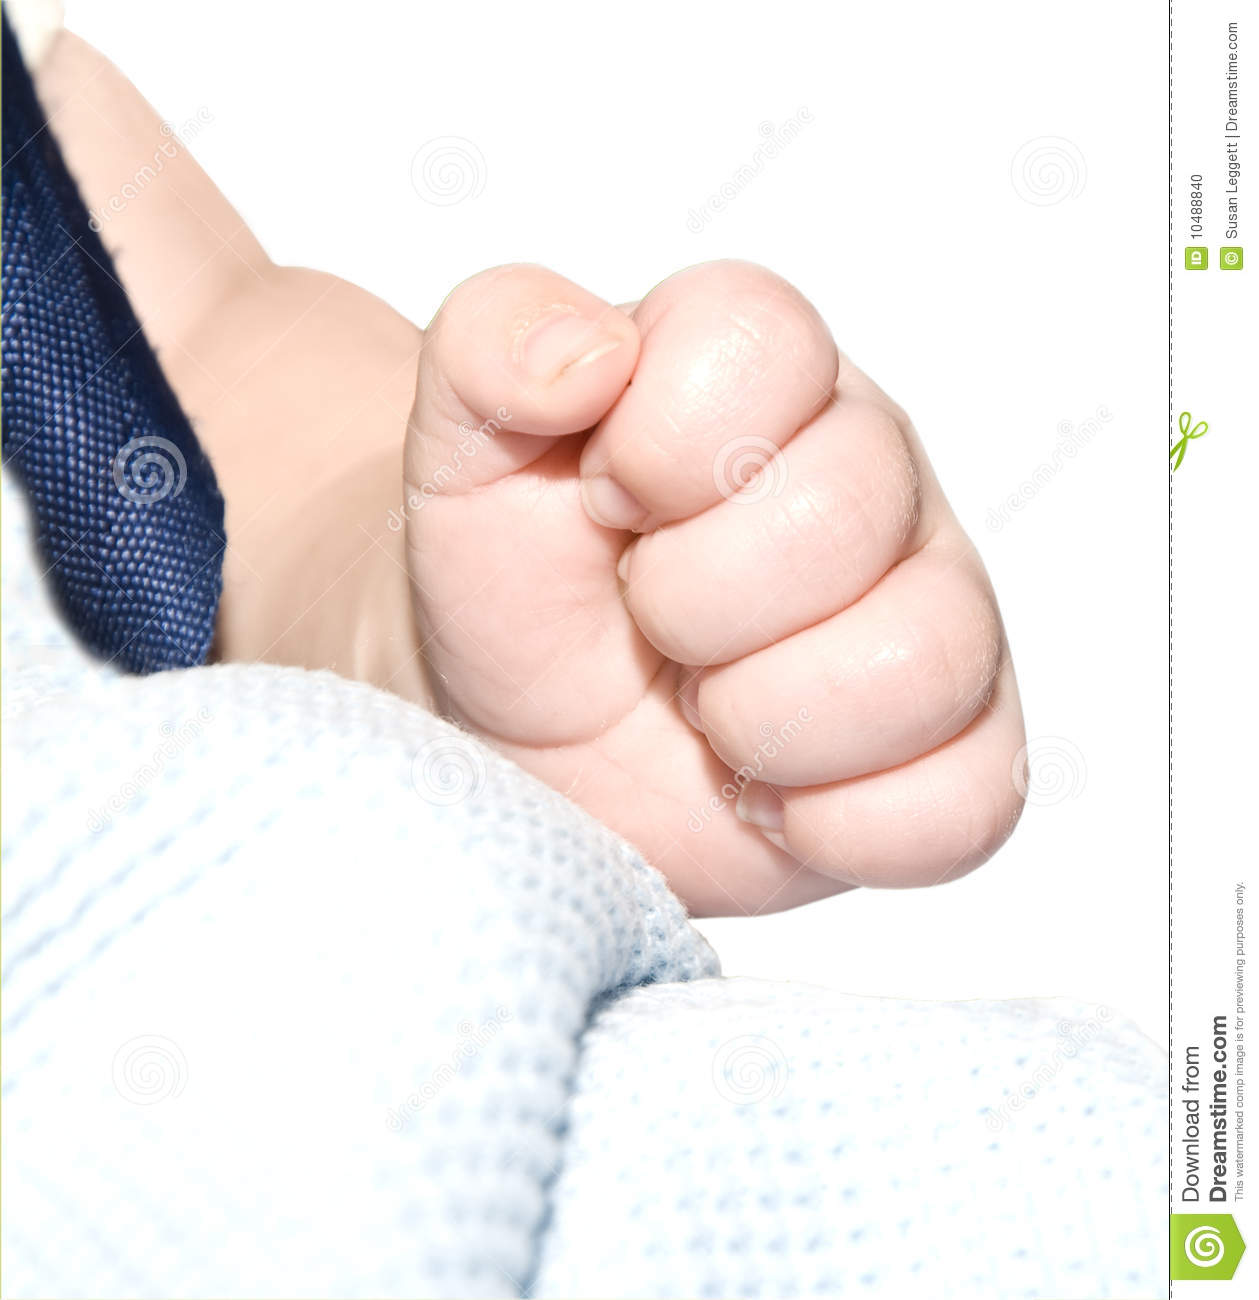 Baby making a fist